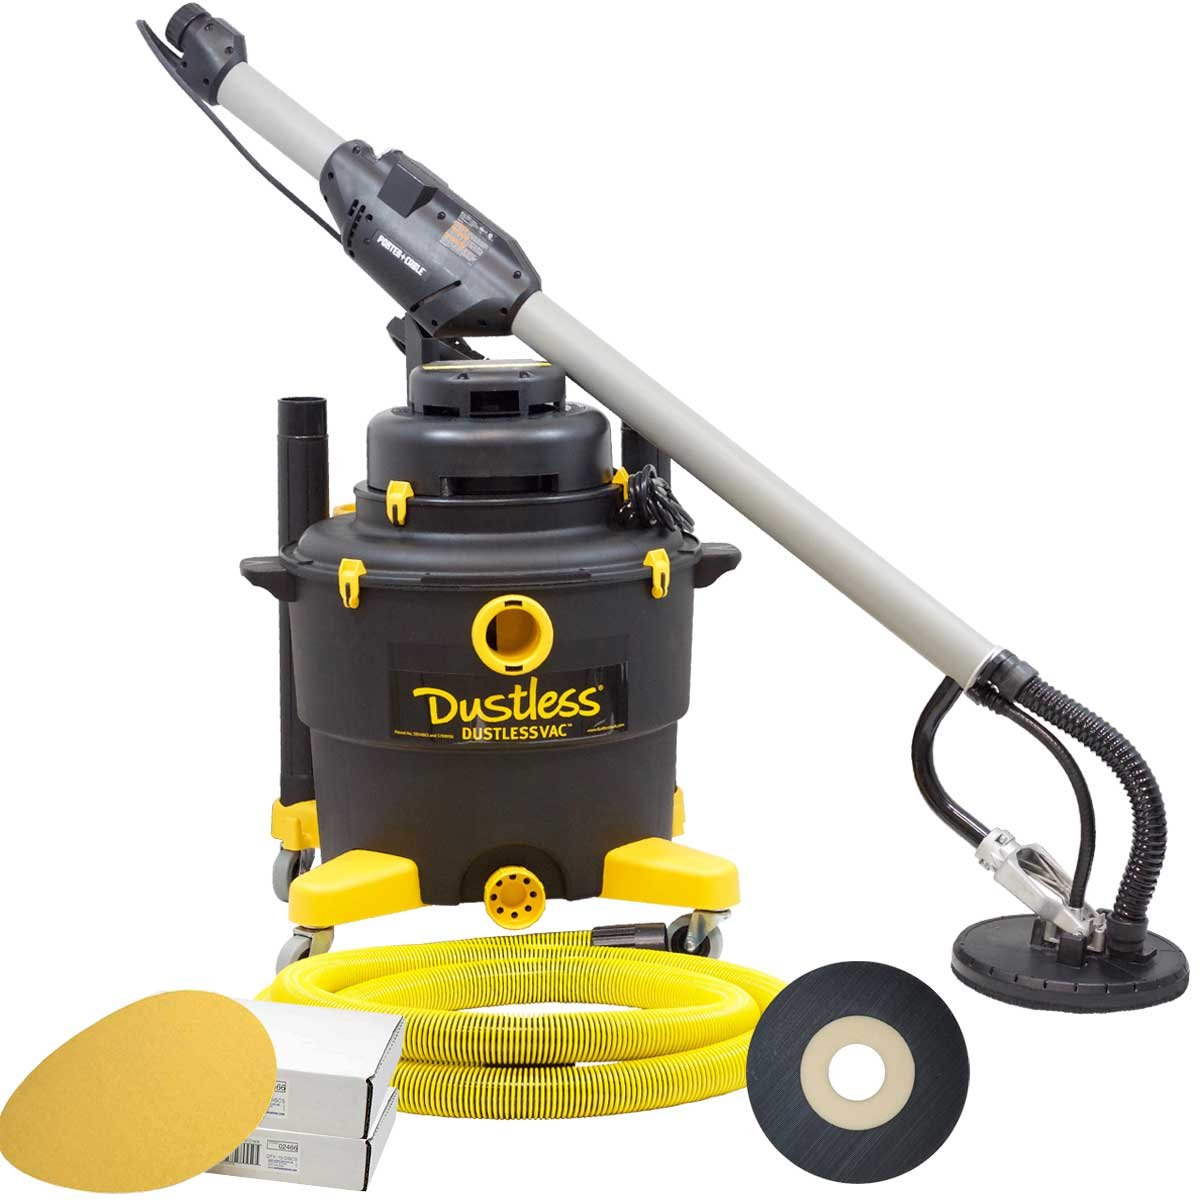 Porter Cable 7800 Dustless Drywall Sander/Vacuum Combo Kit - Top-Rated Professional Set